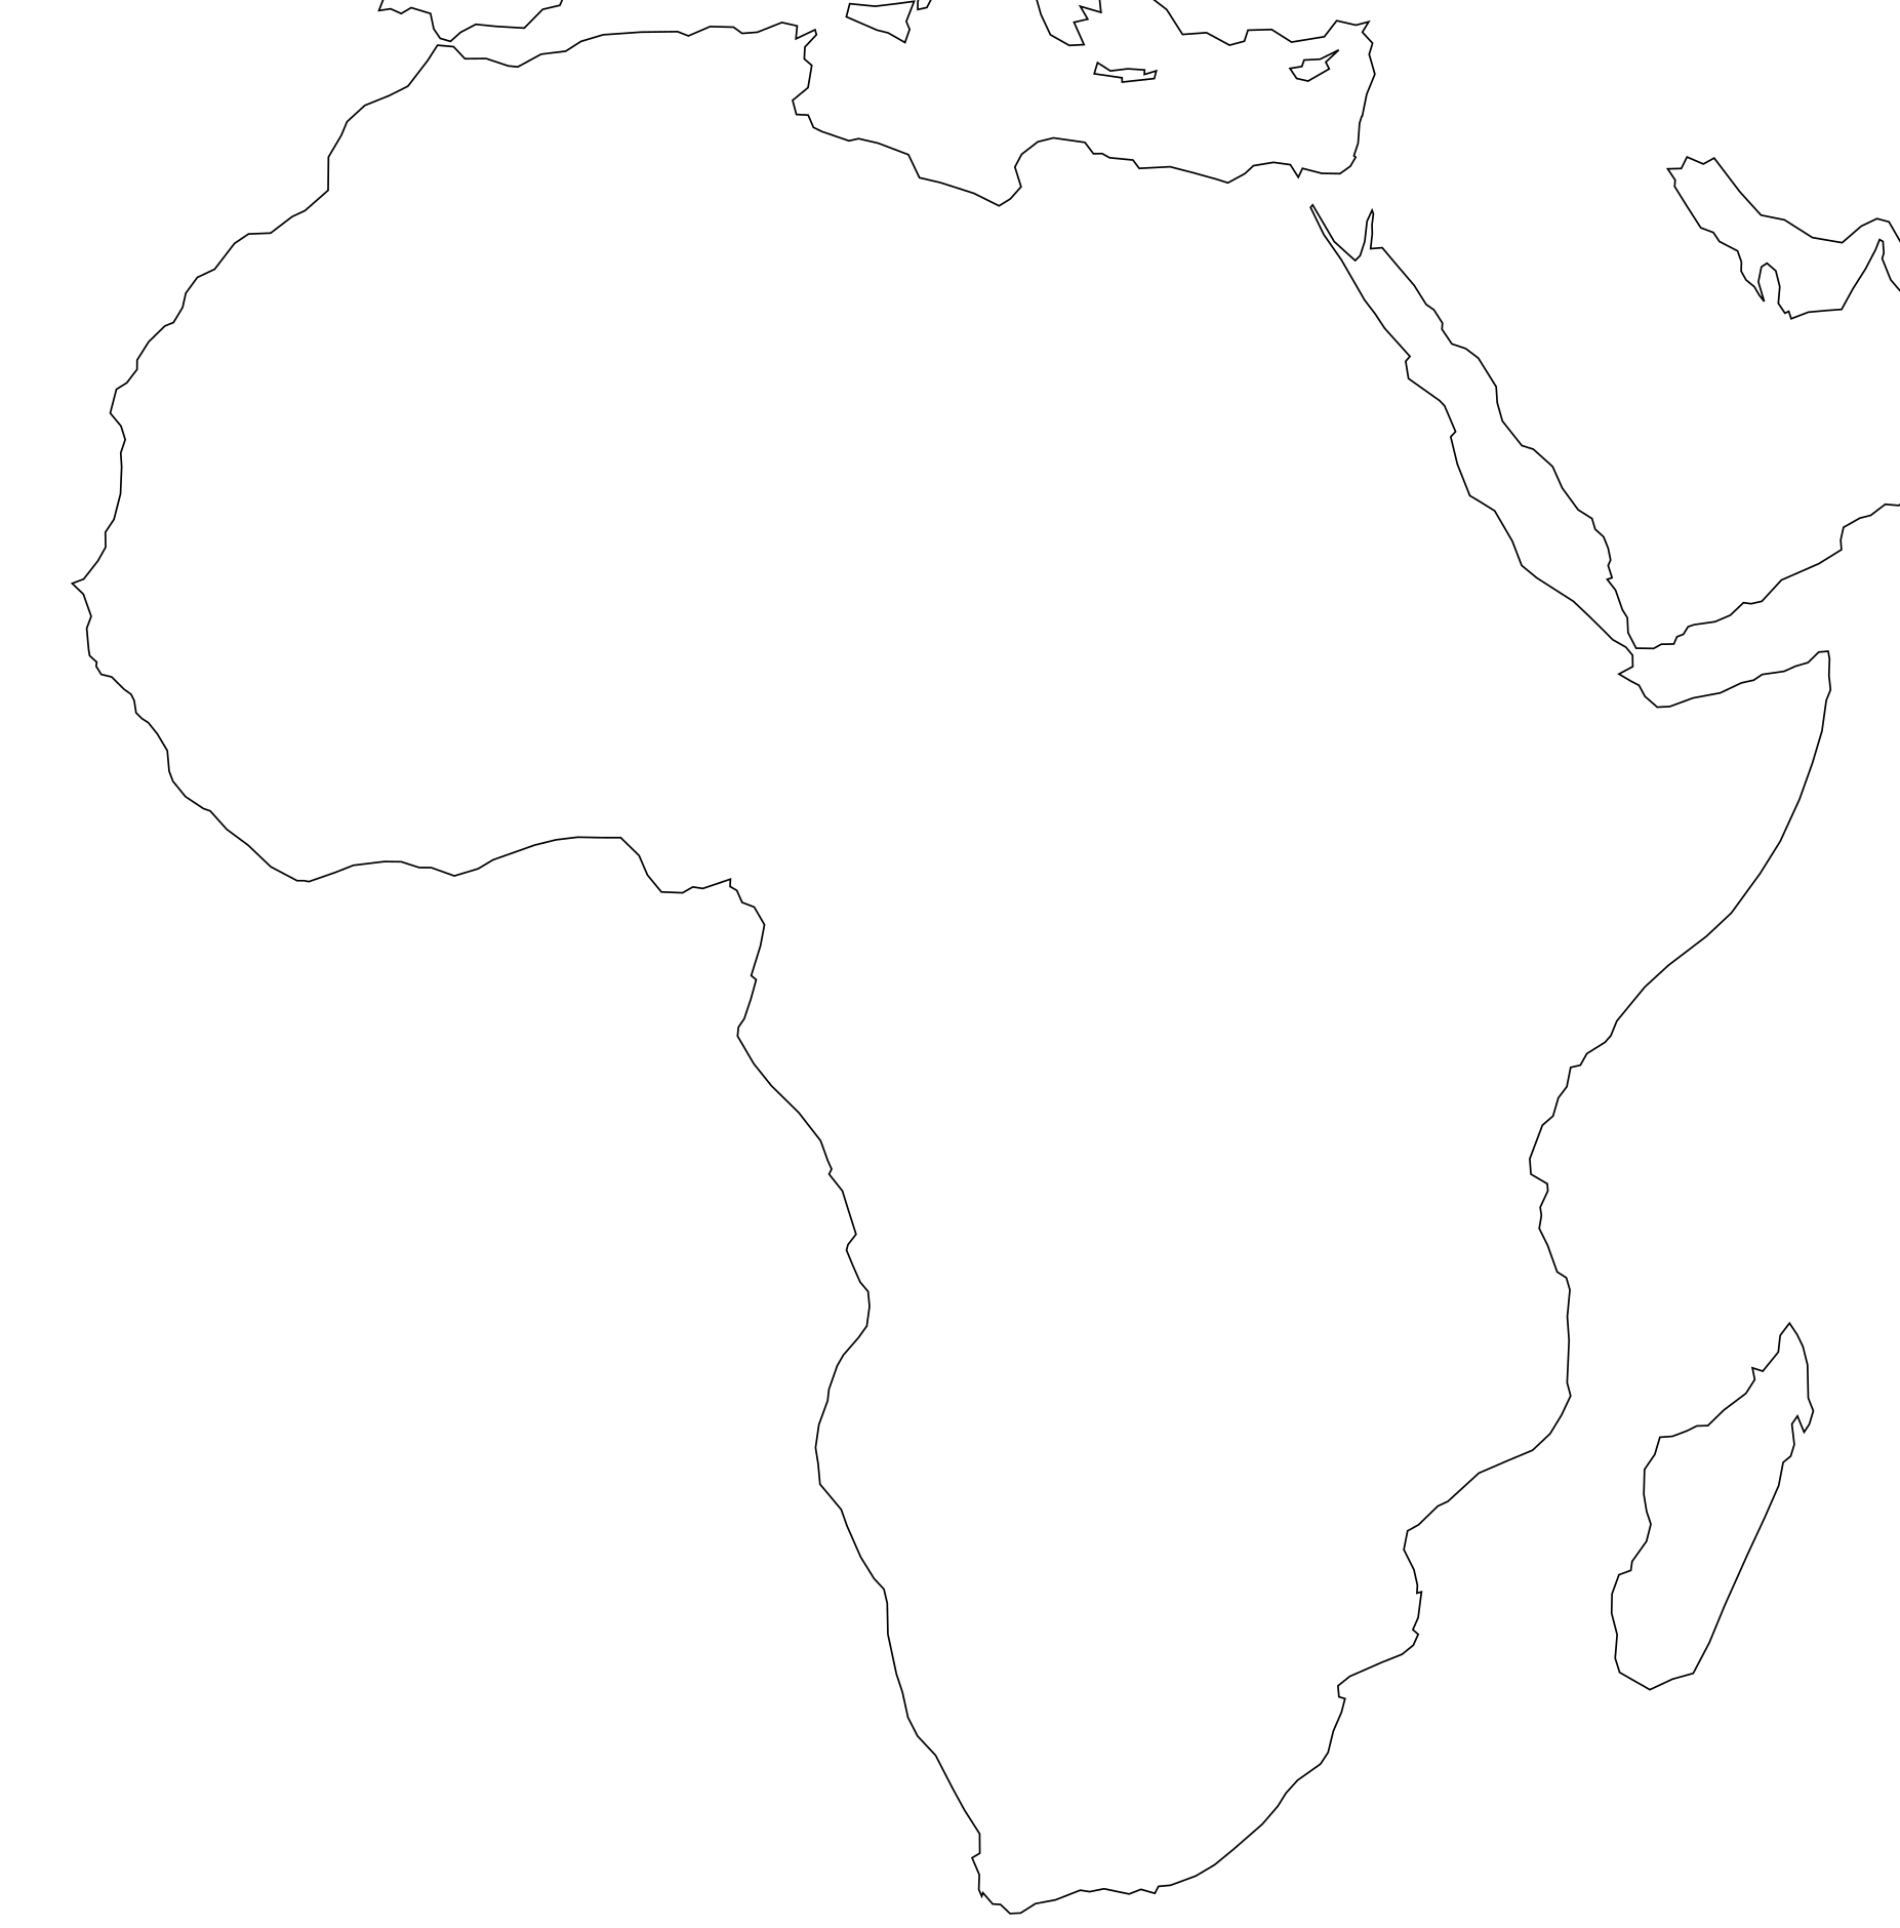 map of africa printable black and white blank map of africa quiz africa map and of black printable white